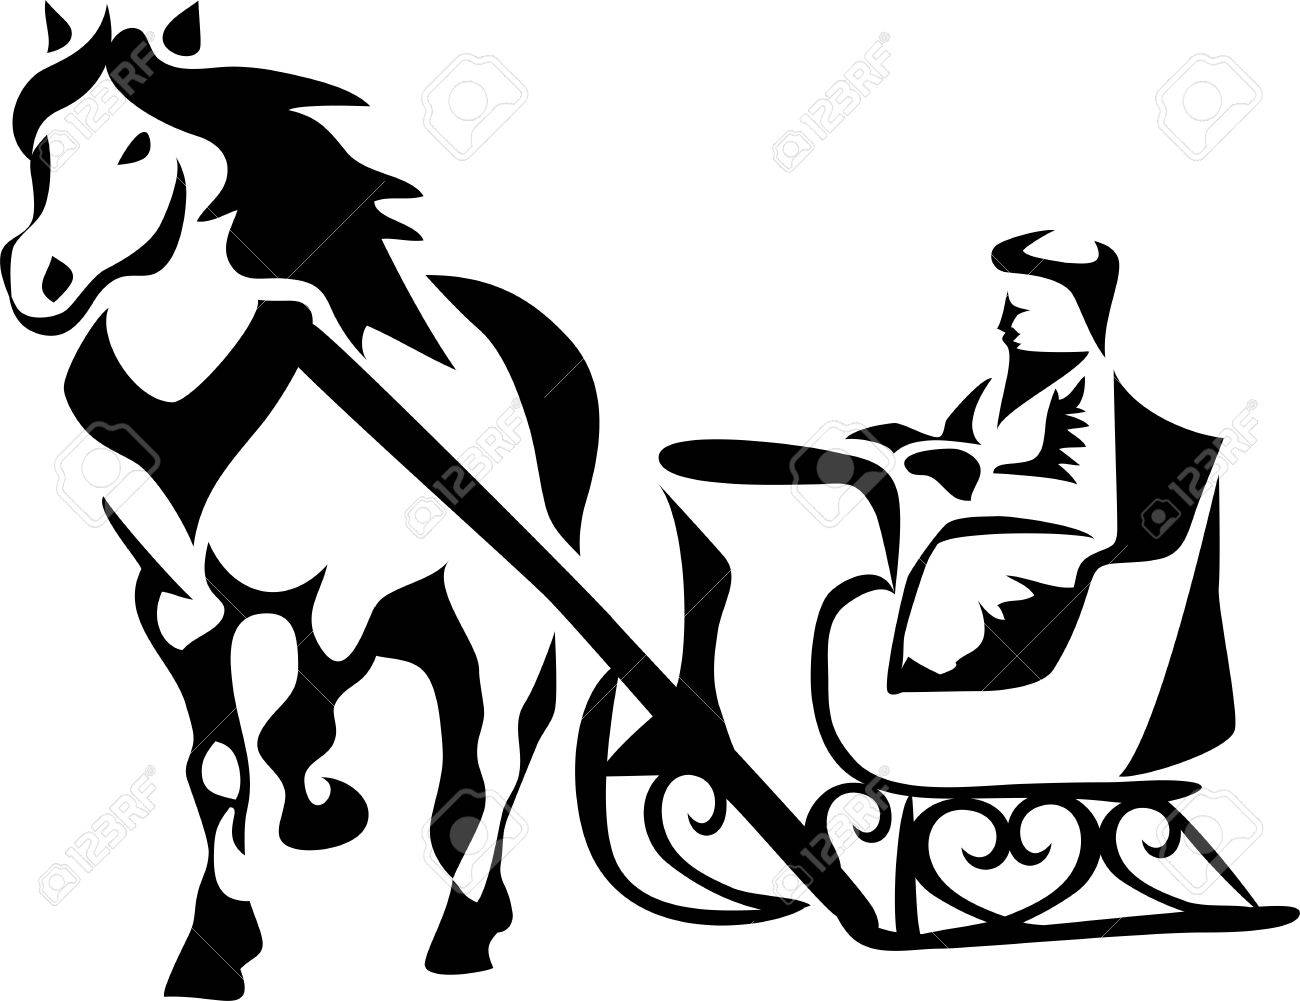 horse drawn sleigh royalty free cliparts vectors and stock rh 123rf com free clipart of horse drawn sleigh Christmas Horse Clip Art